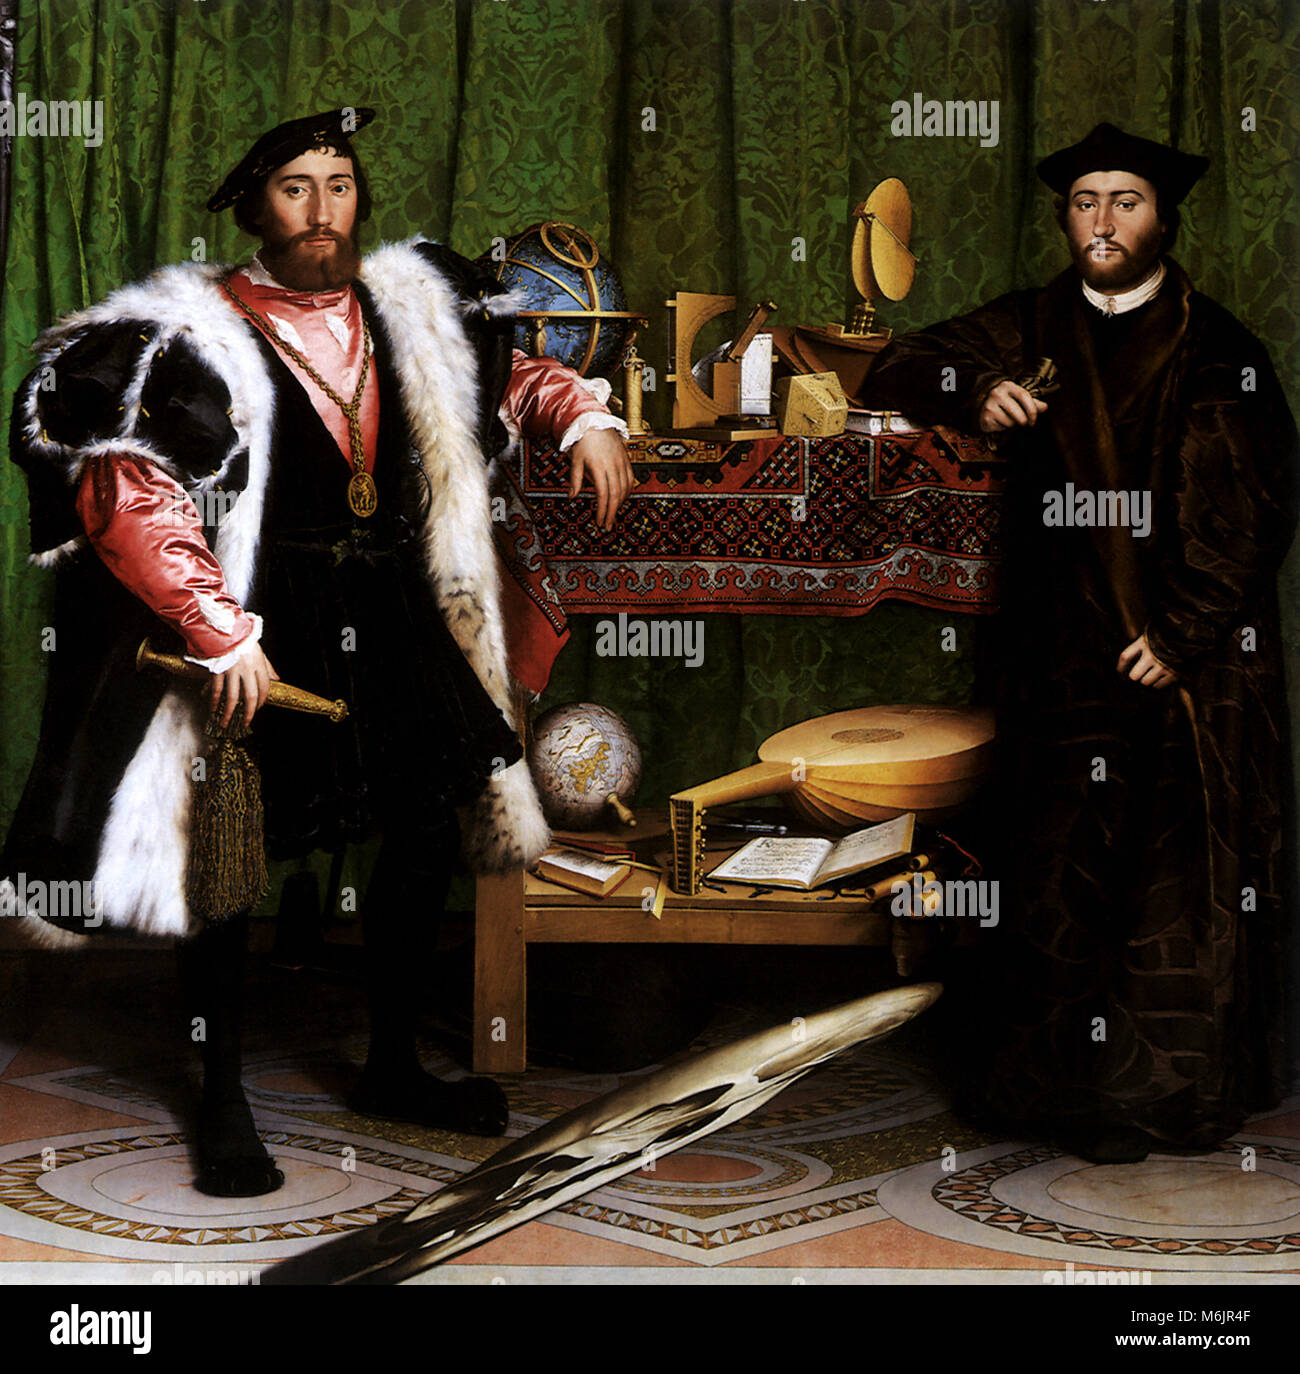 The Ambassadors 1533, Holbein, Hans, the Younger, 1533. Stock Photo